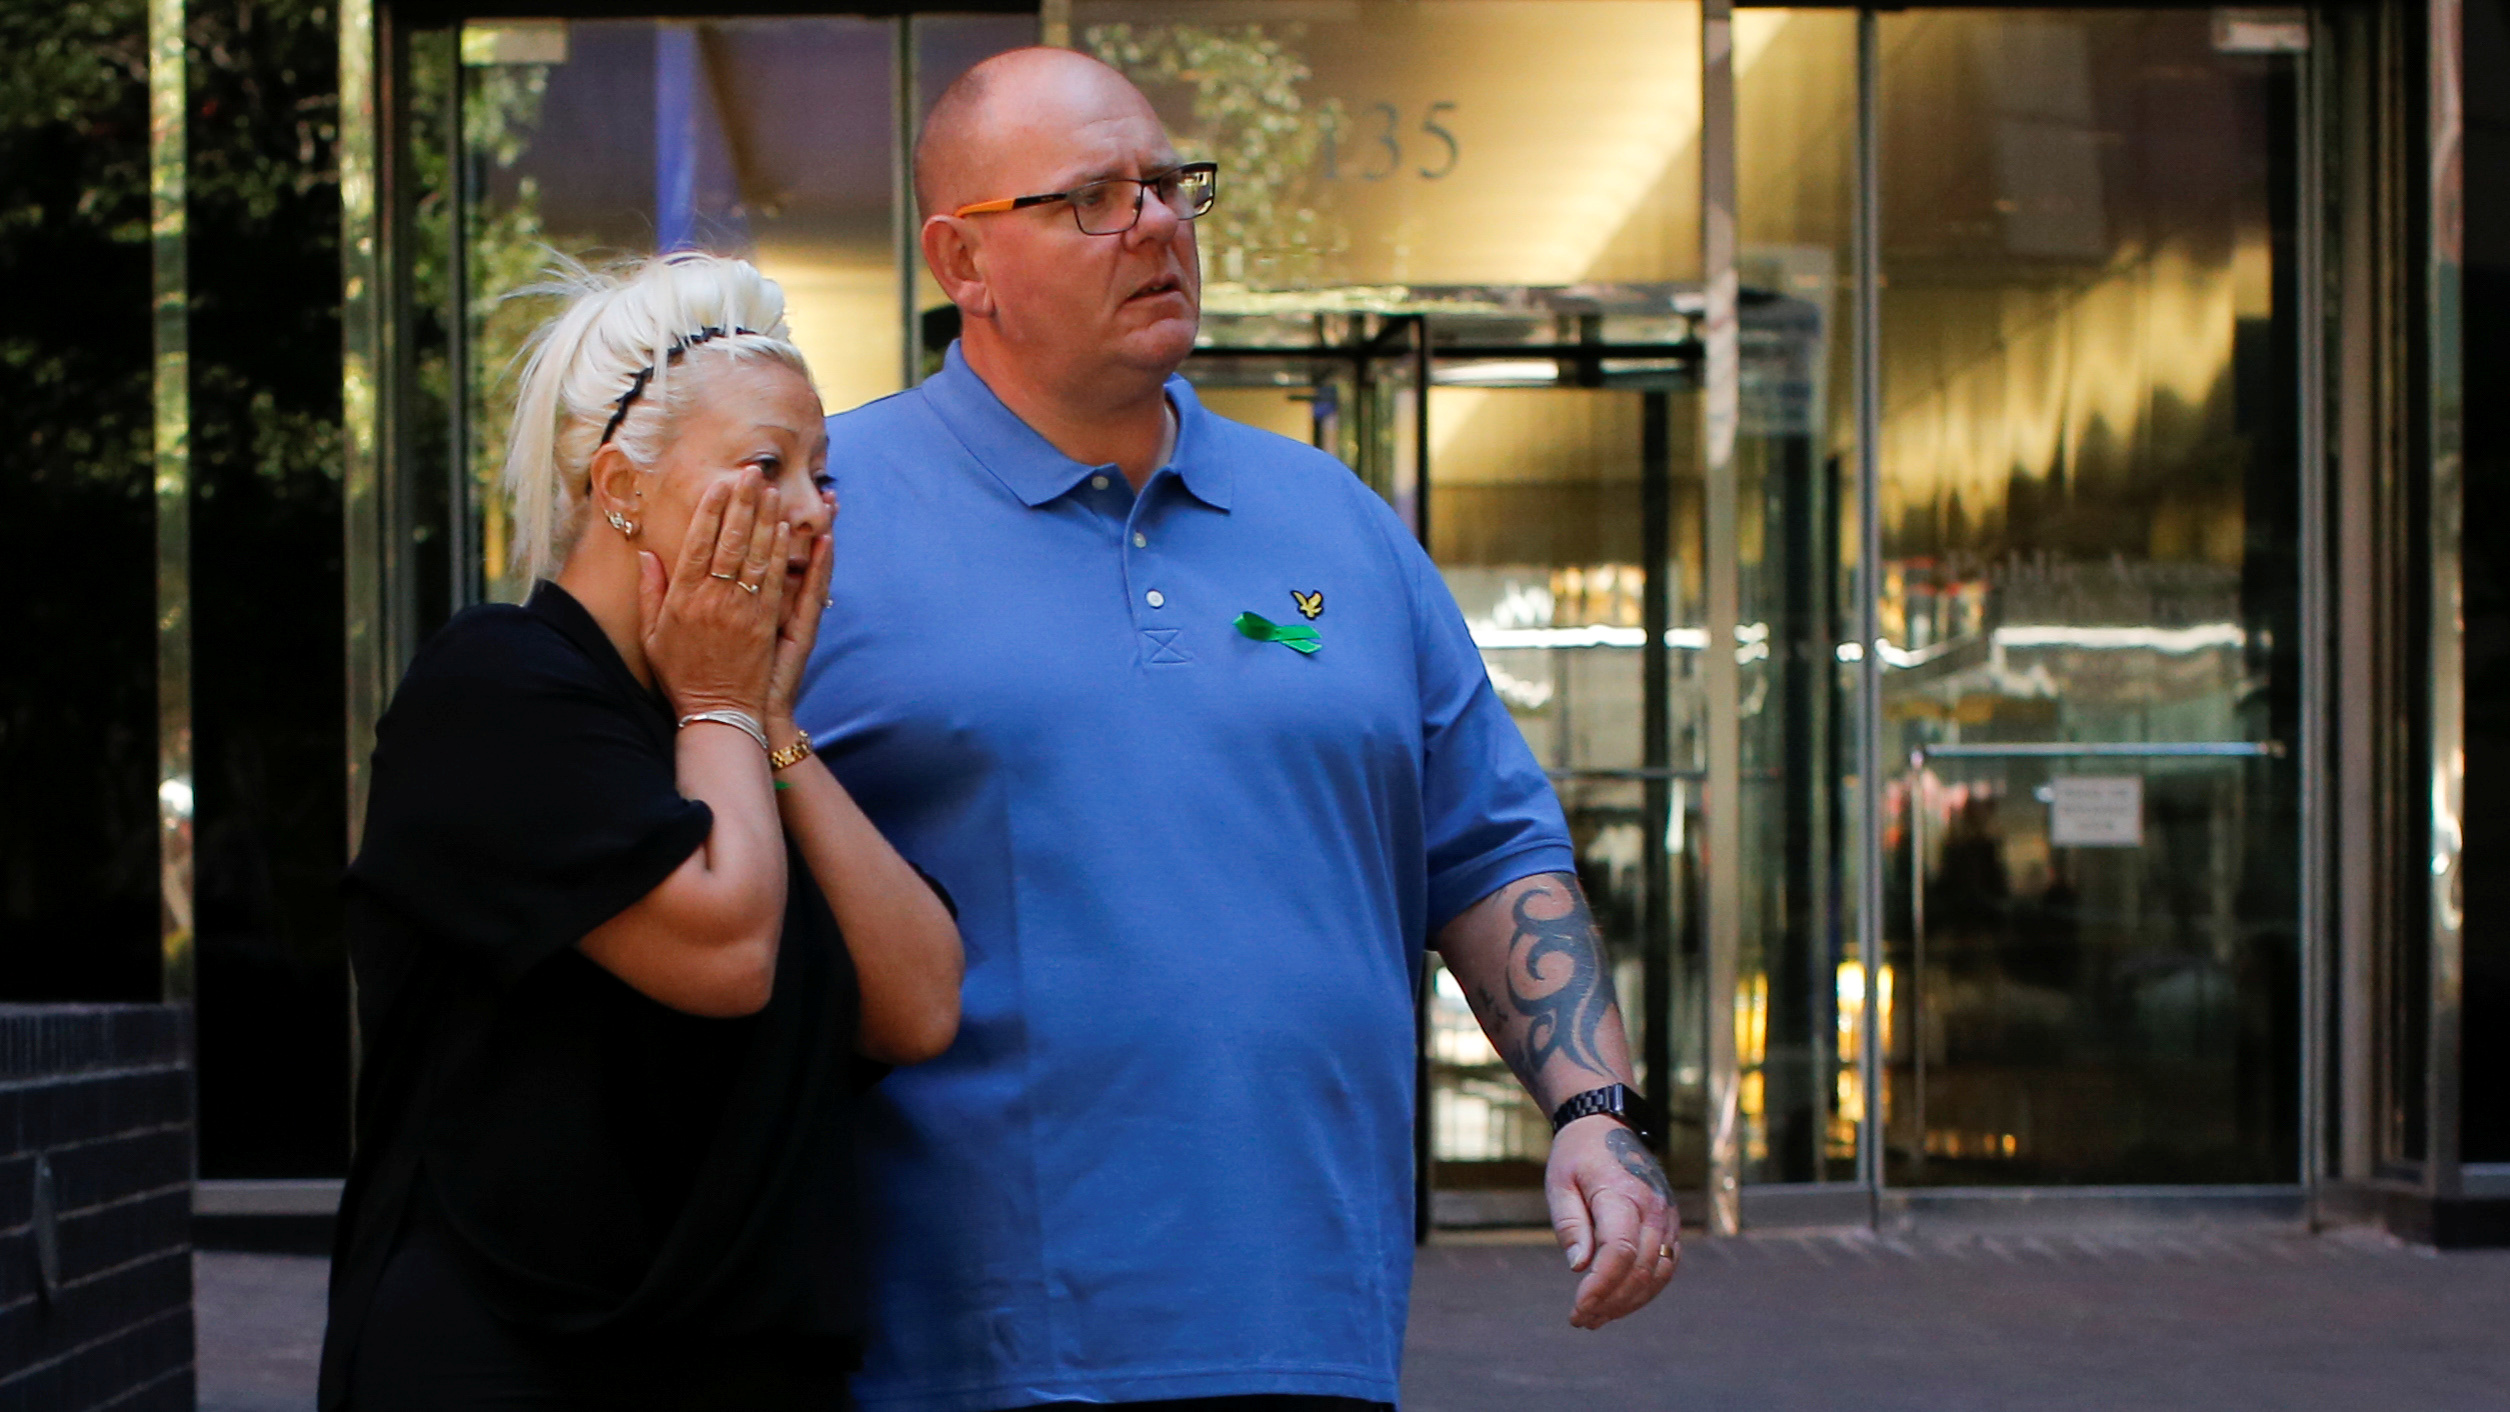 File photo: Charlotte Charles and Tim Dunn, parents of British teen Harry Dunn who was killed in a car crash on his motorcycle, allegedly by the wife of an American diplomat, walk out after an interview in the Manhattan borough of New York City. REUTERS/Eduardo Munoz